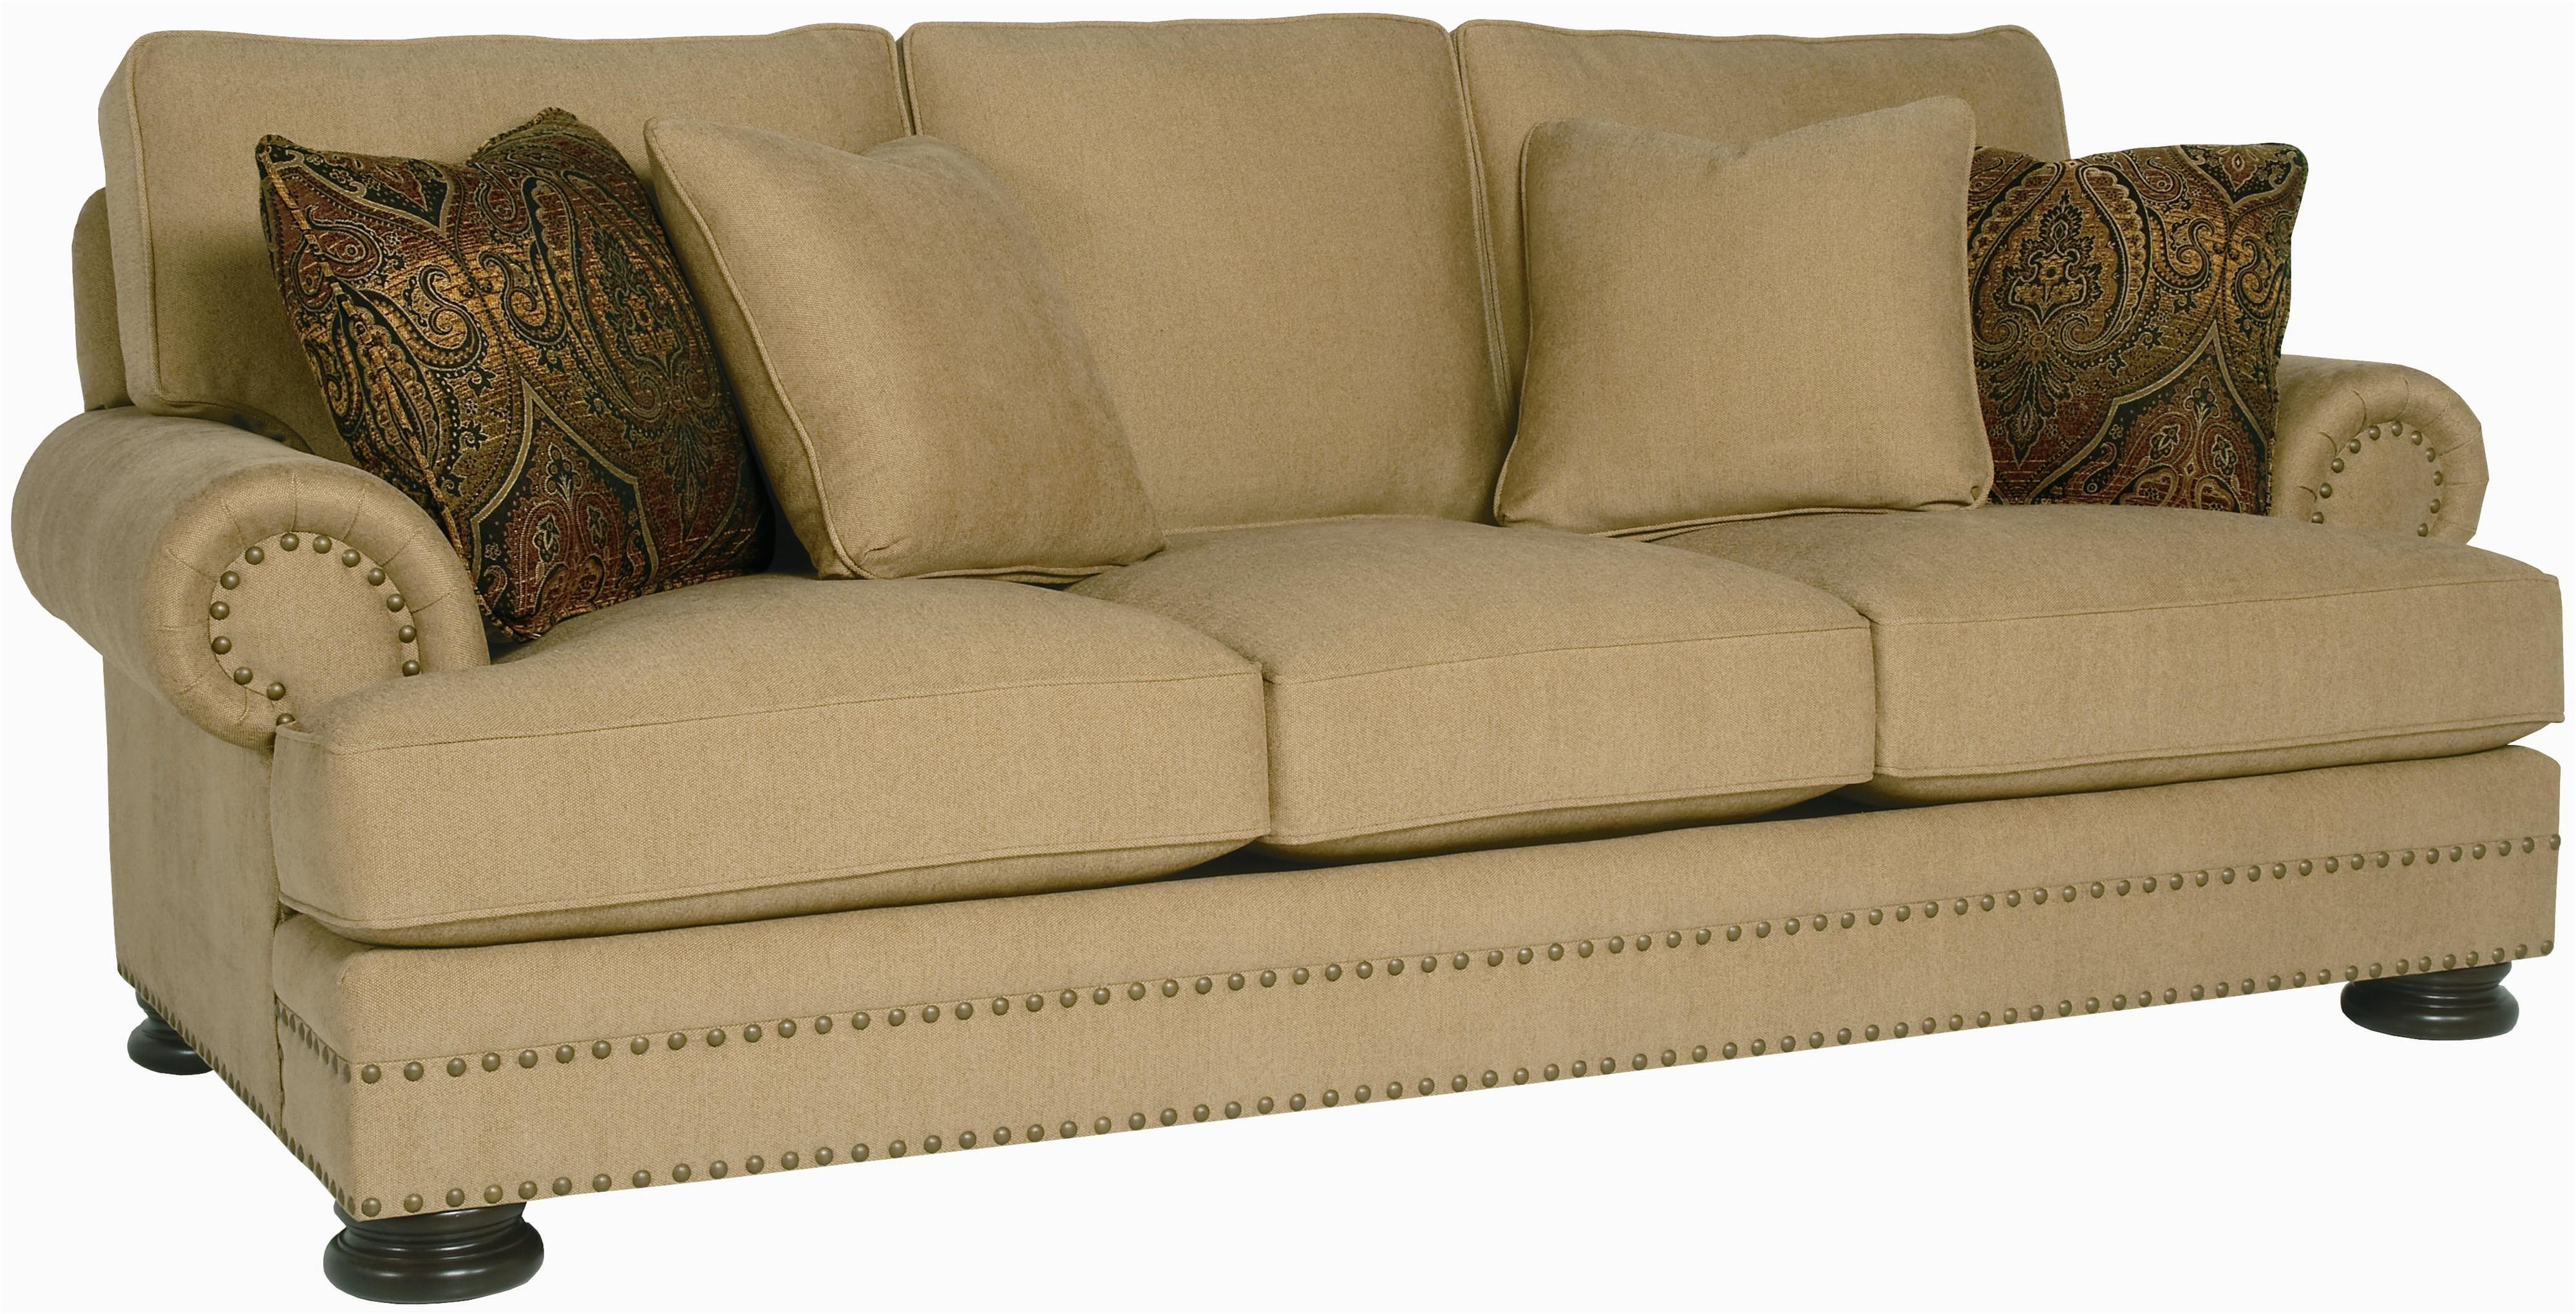 Bernhardt foster sofa bernhardt foster leather sectional for Sectional sofas with nailhead trim